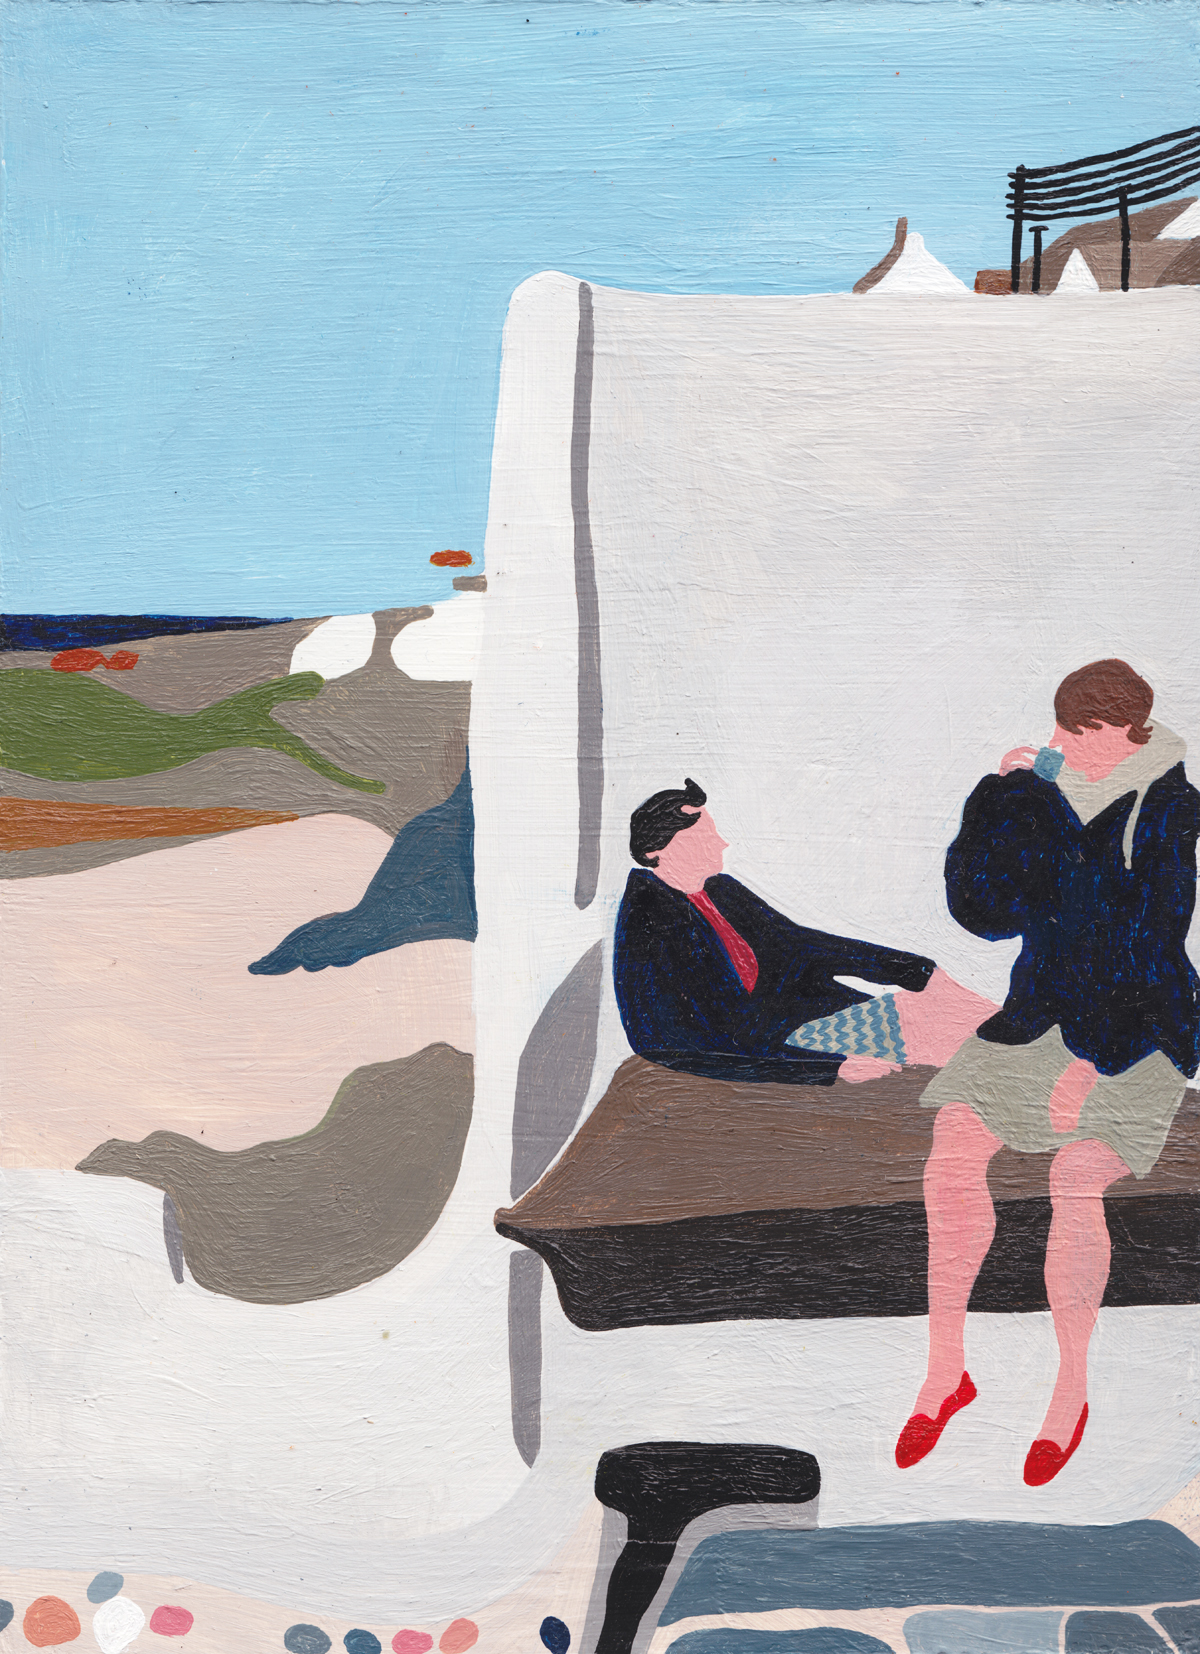 'Holiday' acrylic and watercolour on MDF board